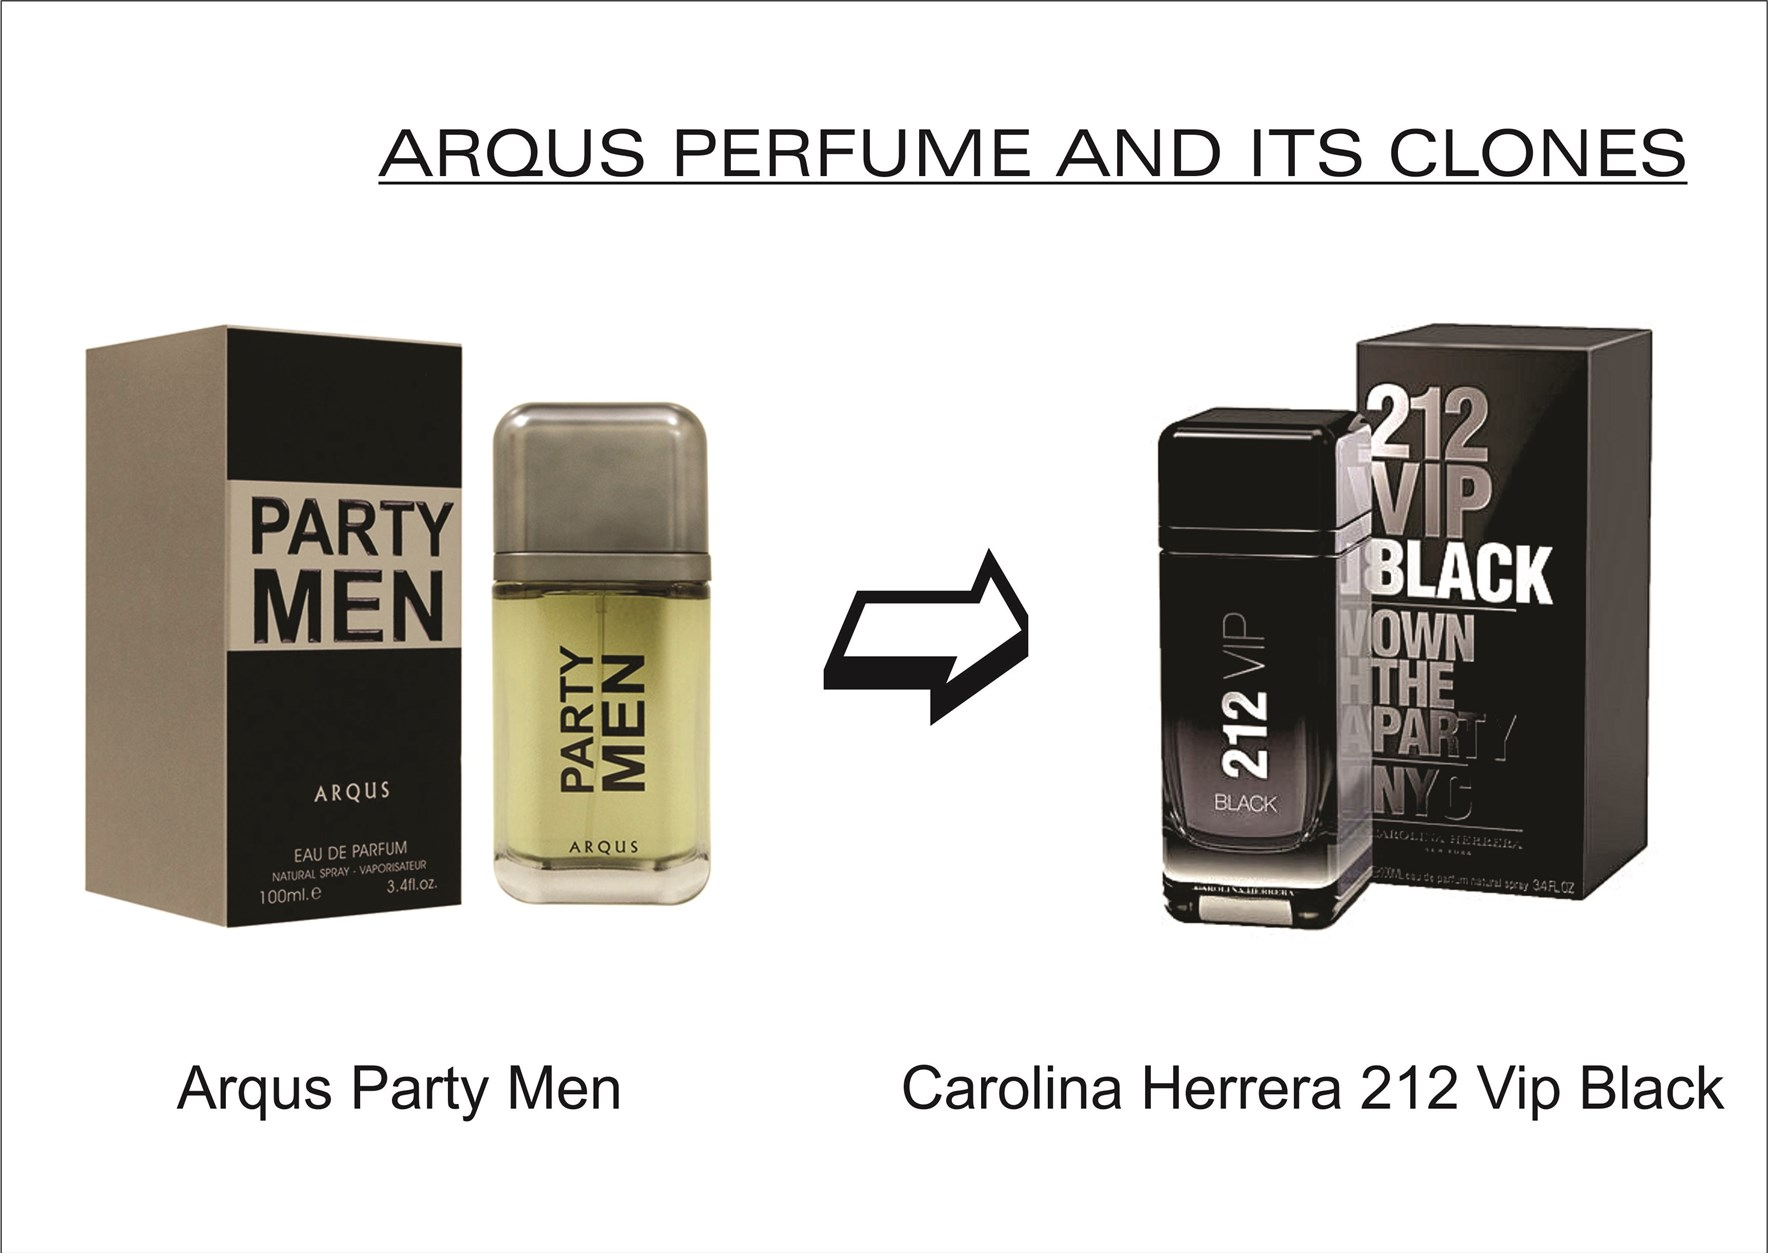 arqus-party-men-for-men-100-ml-edp-by-lattafa-perfumes-carolina-herrera-212-vip-black